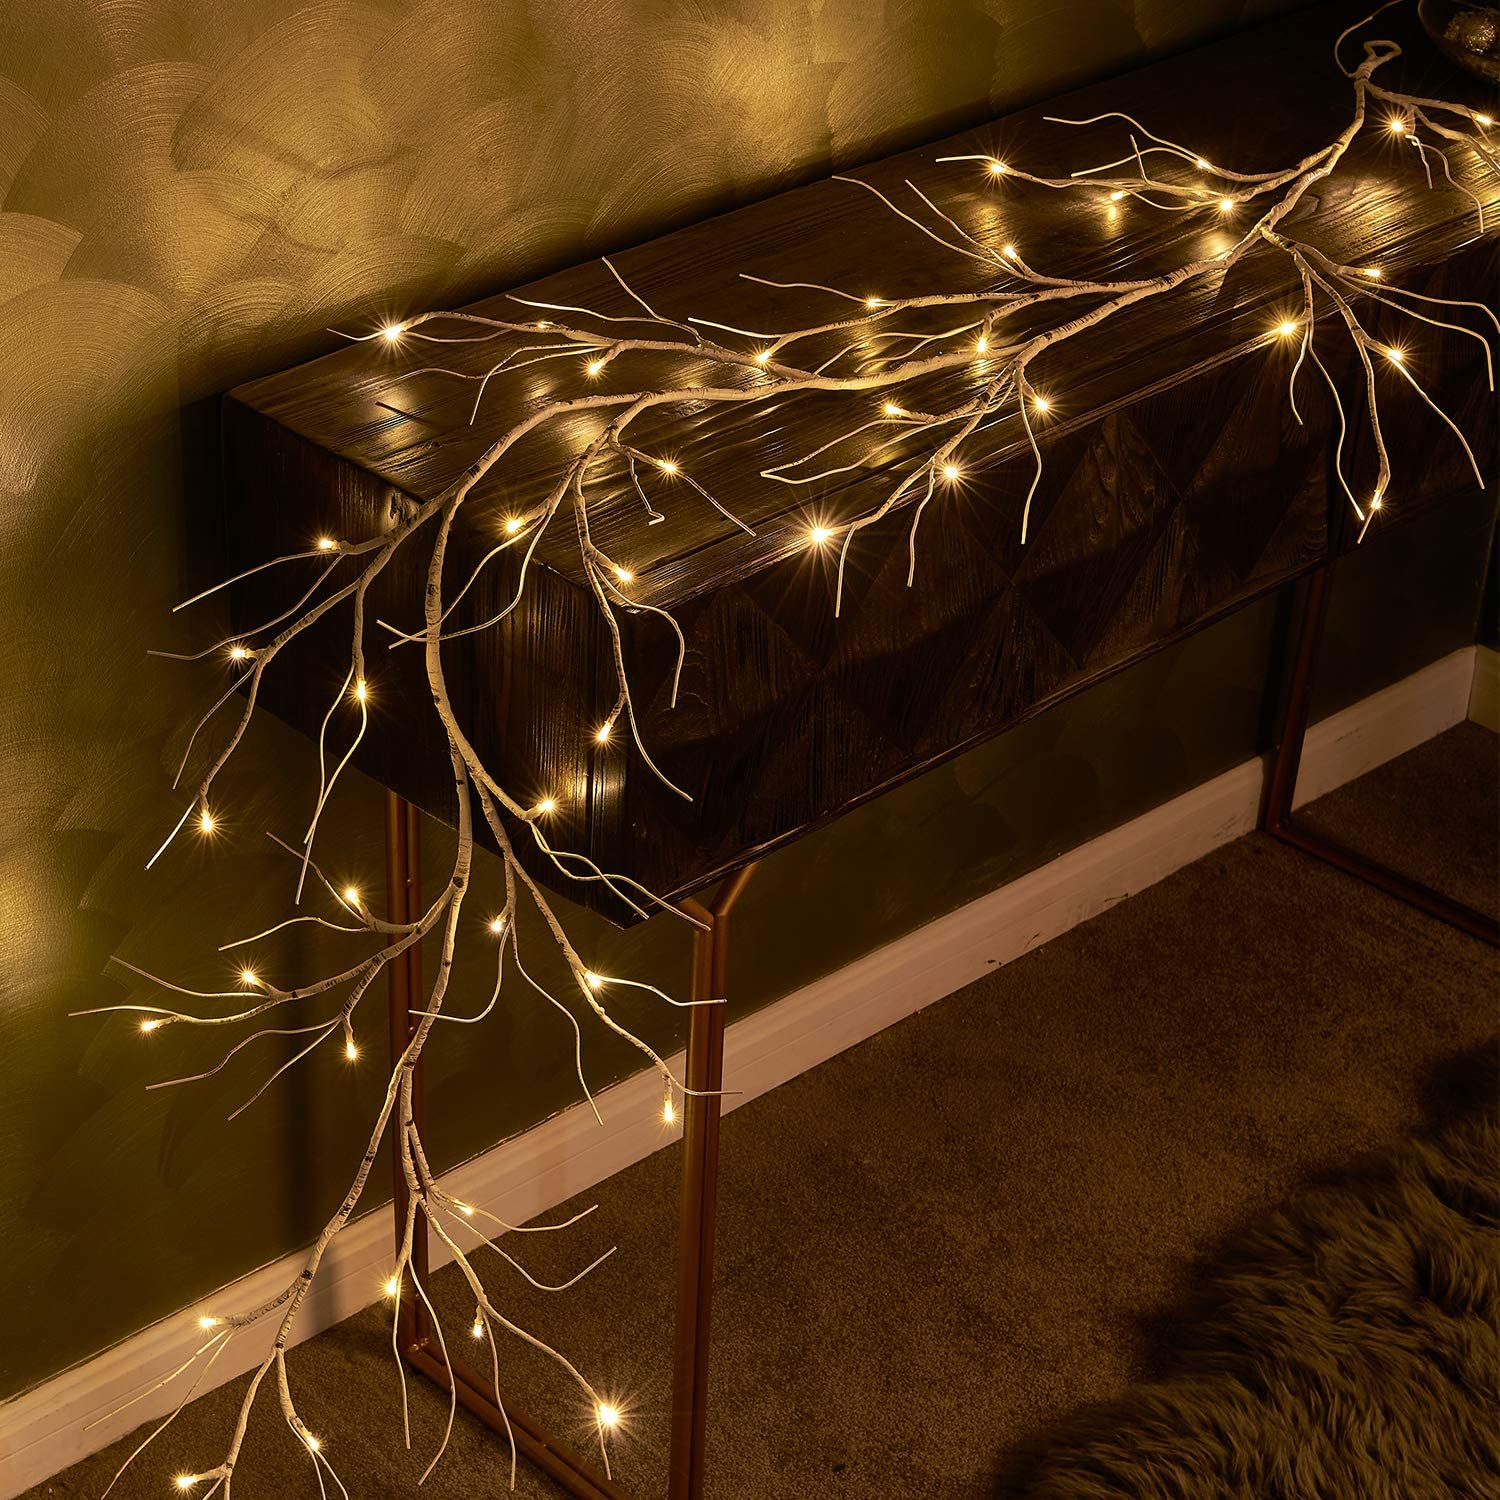 Fudios Pre-lit Twig Garland Lights Battery Operated with Timer Lighted birch Vines for Mantle Christmas all year round 6ft 48 Warm White LED